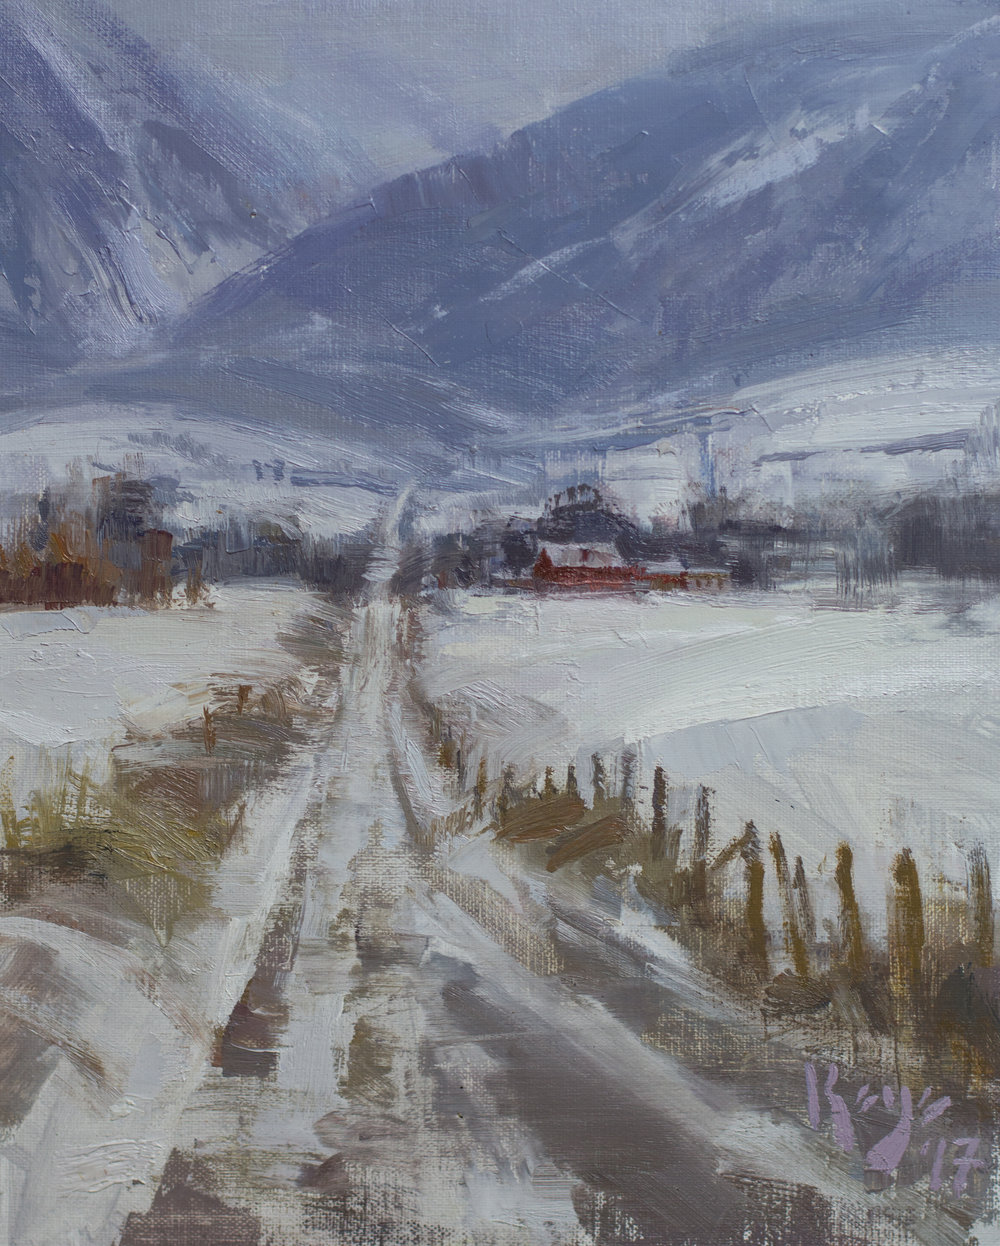 Winter Road, 10 x 8 inches, oil on linen